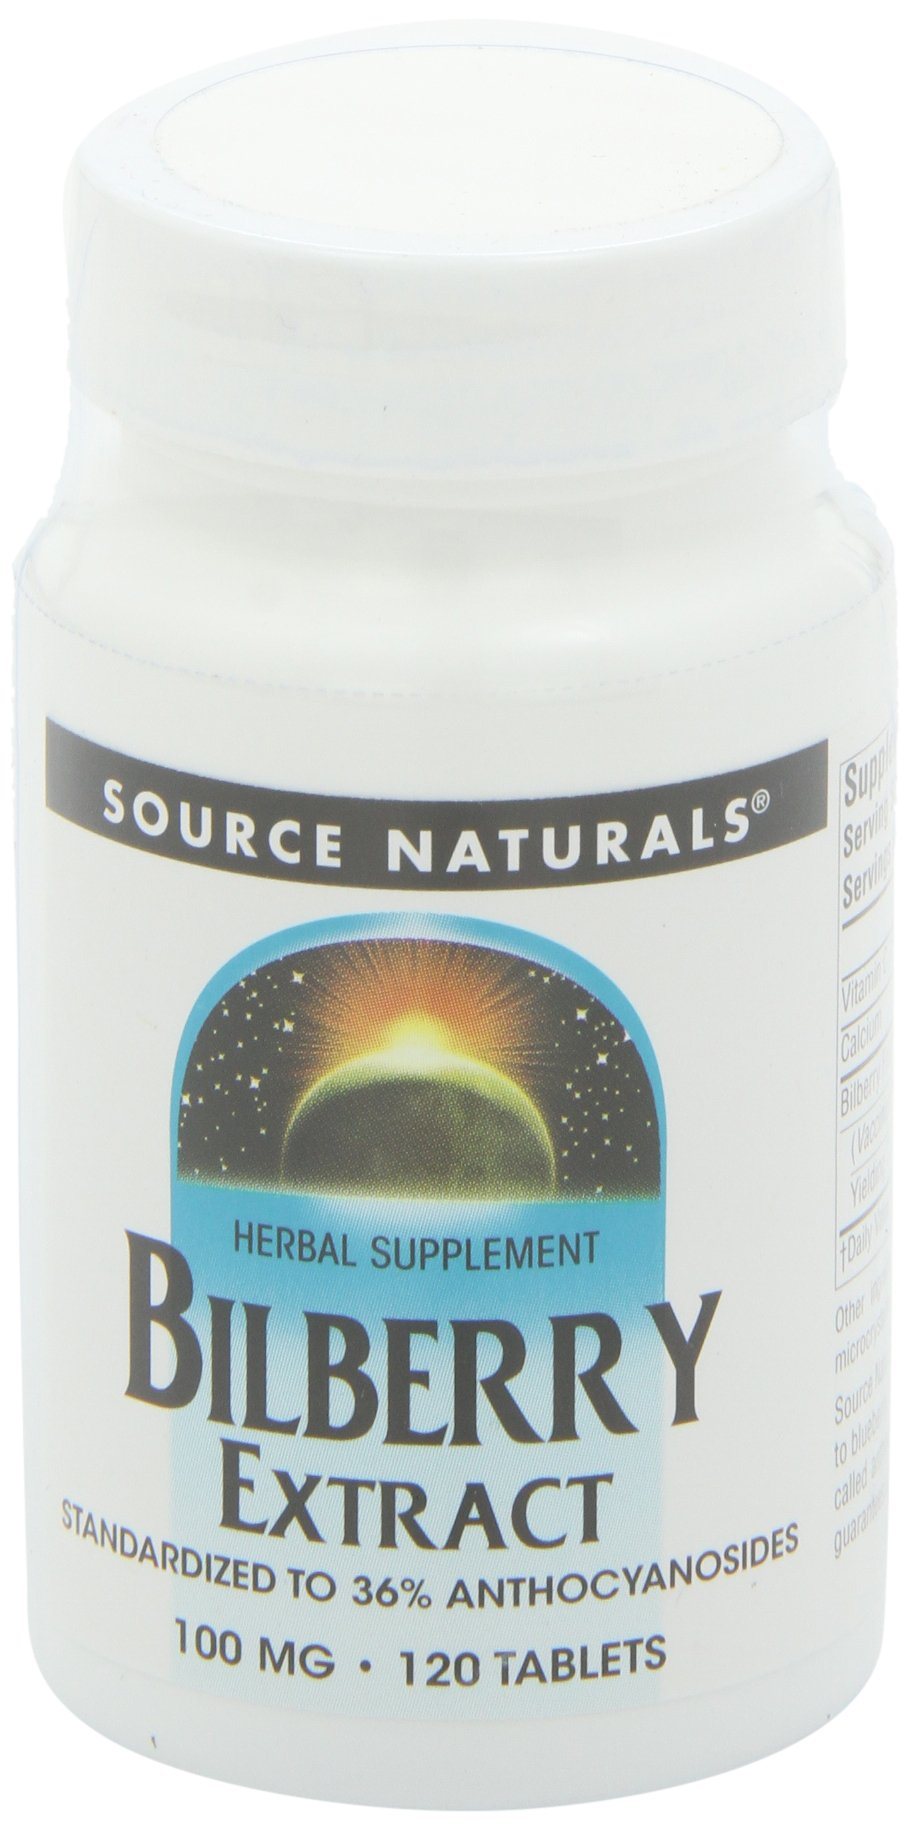 Source Naturals Bilberry Extract 100mg, Standardized Botanical Antioxidant, 120 Tablets